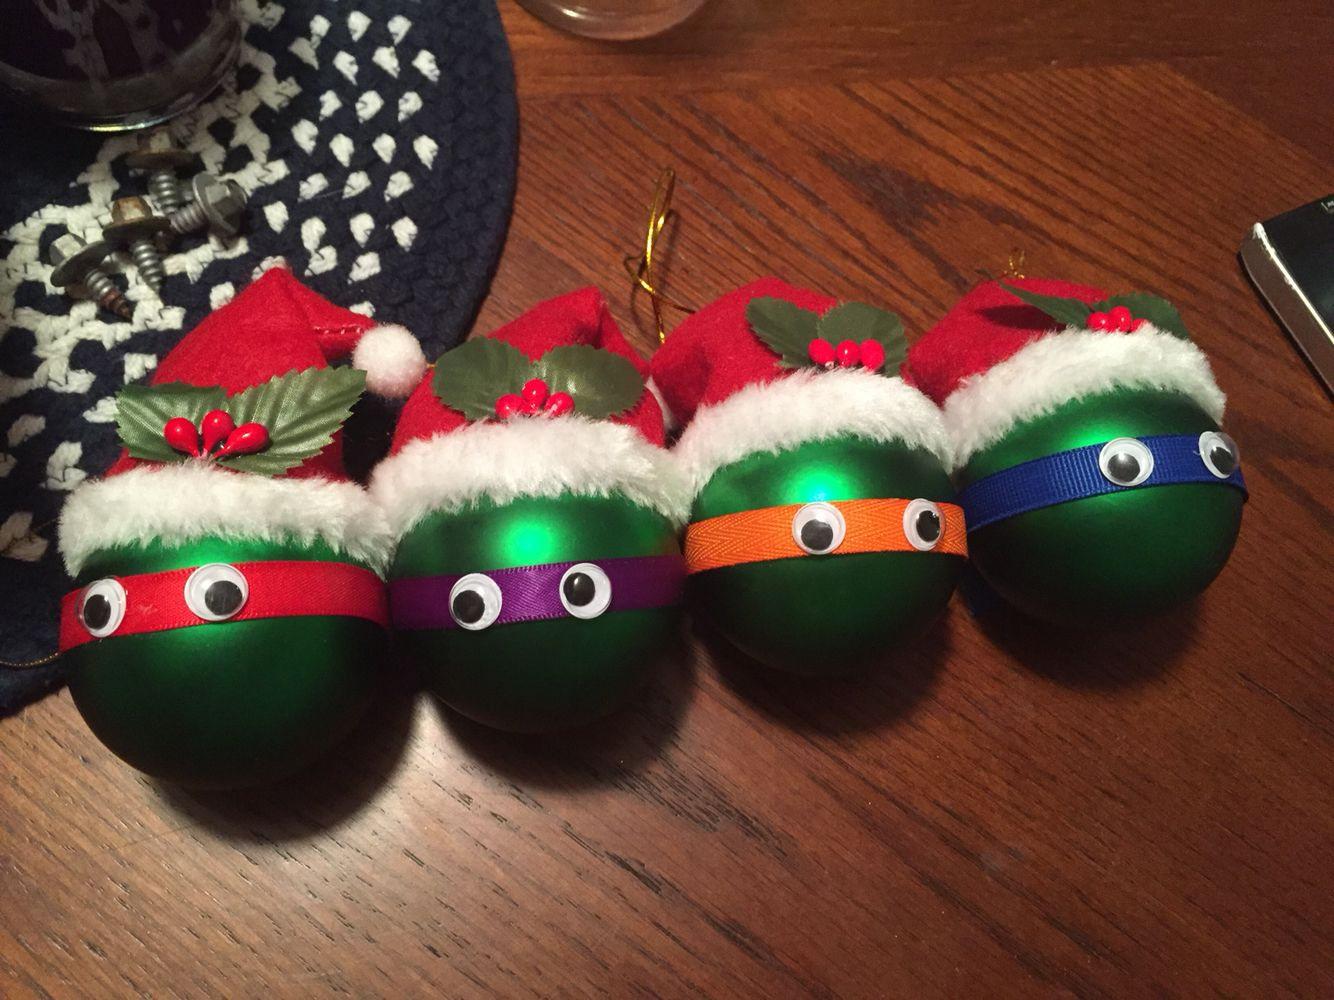 TMNT ornaments Holiday, Christmas ornaments, Holiday decor